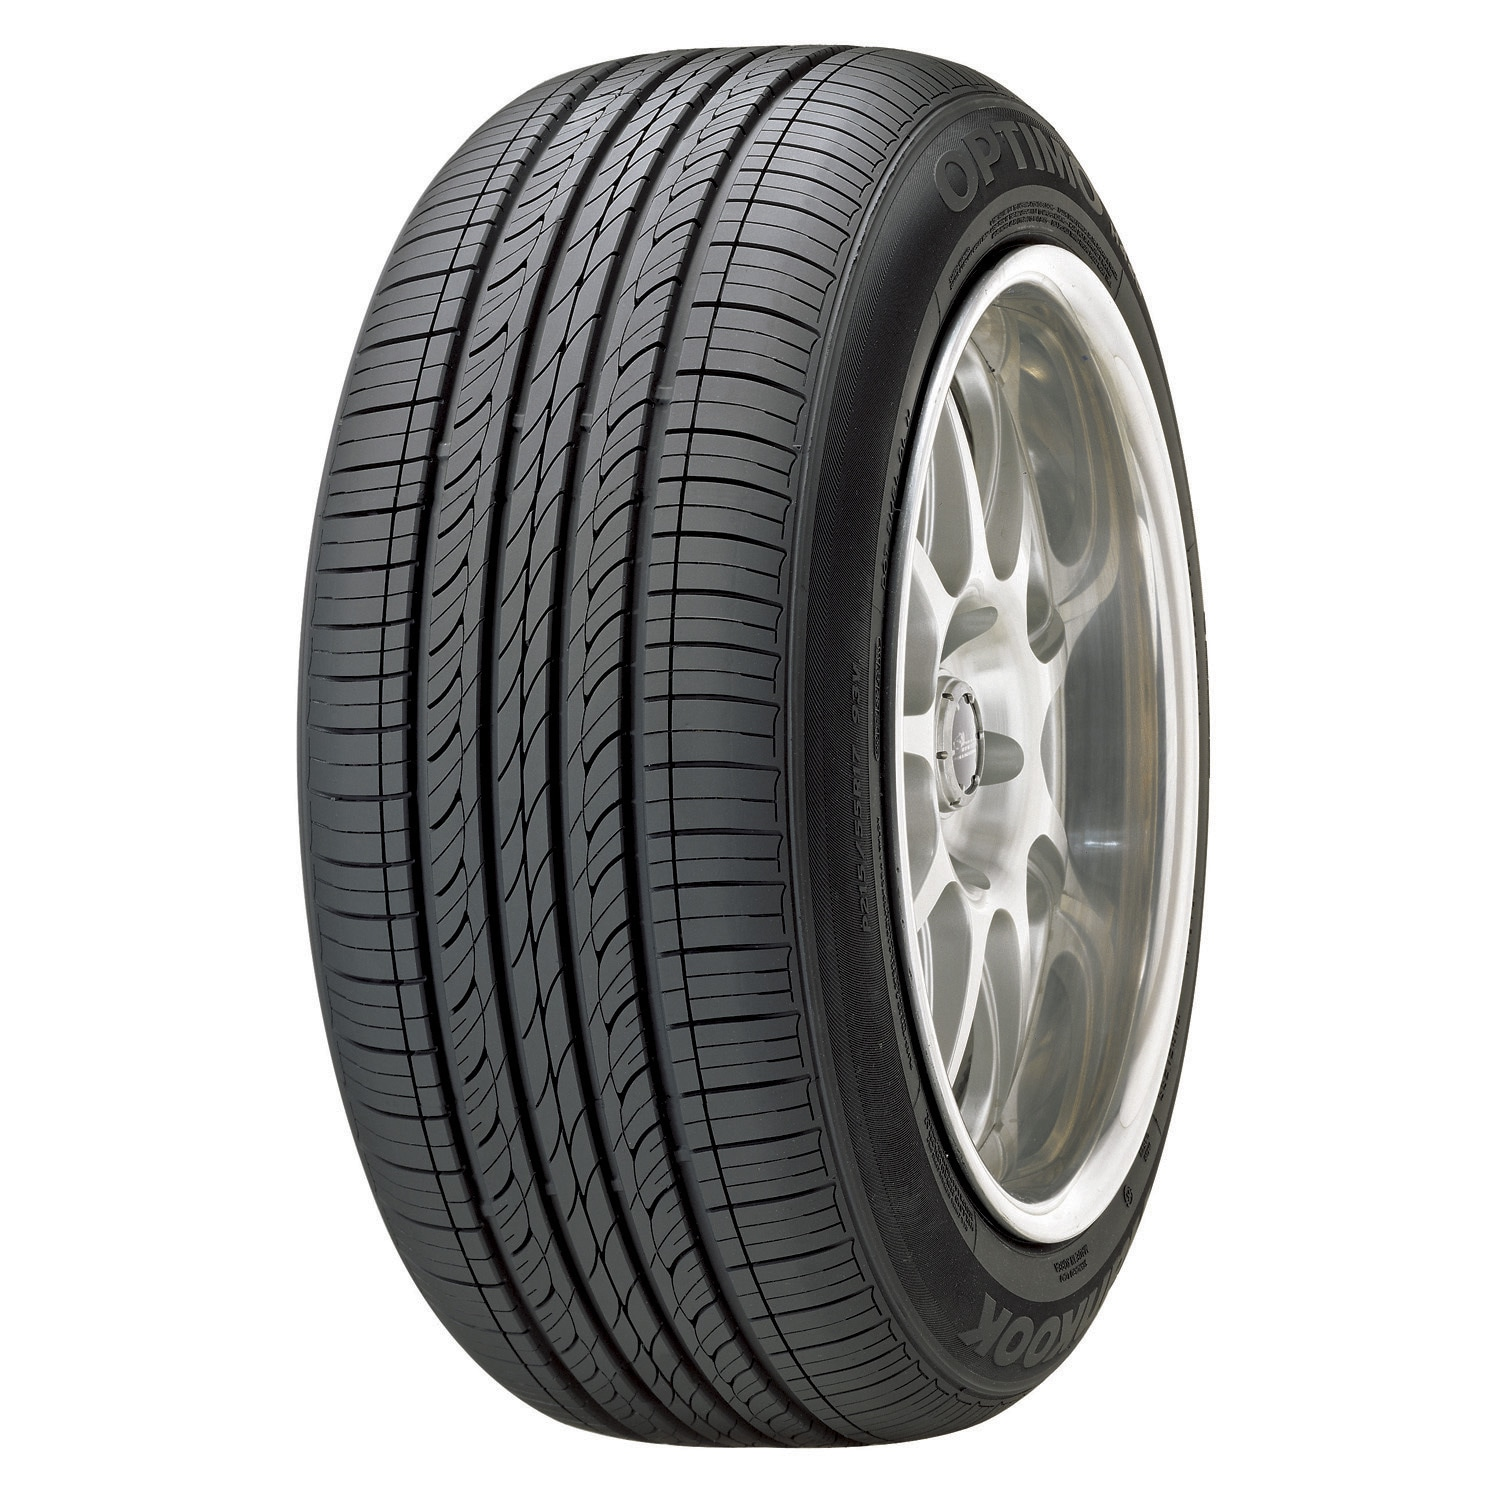 Hankook Optimo H426 All Season Tire - 245/50R17 98V (Black)